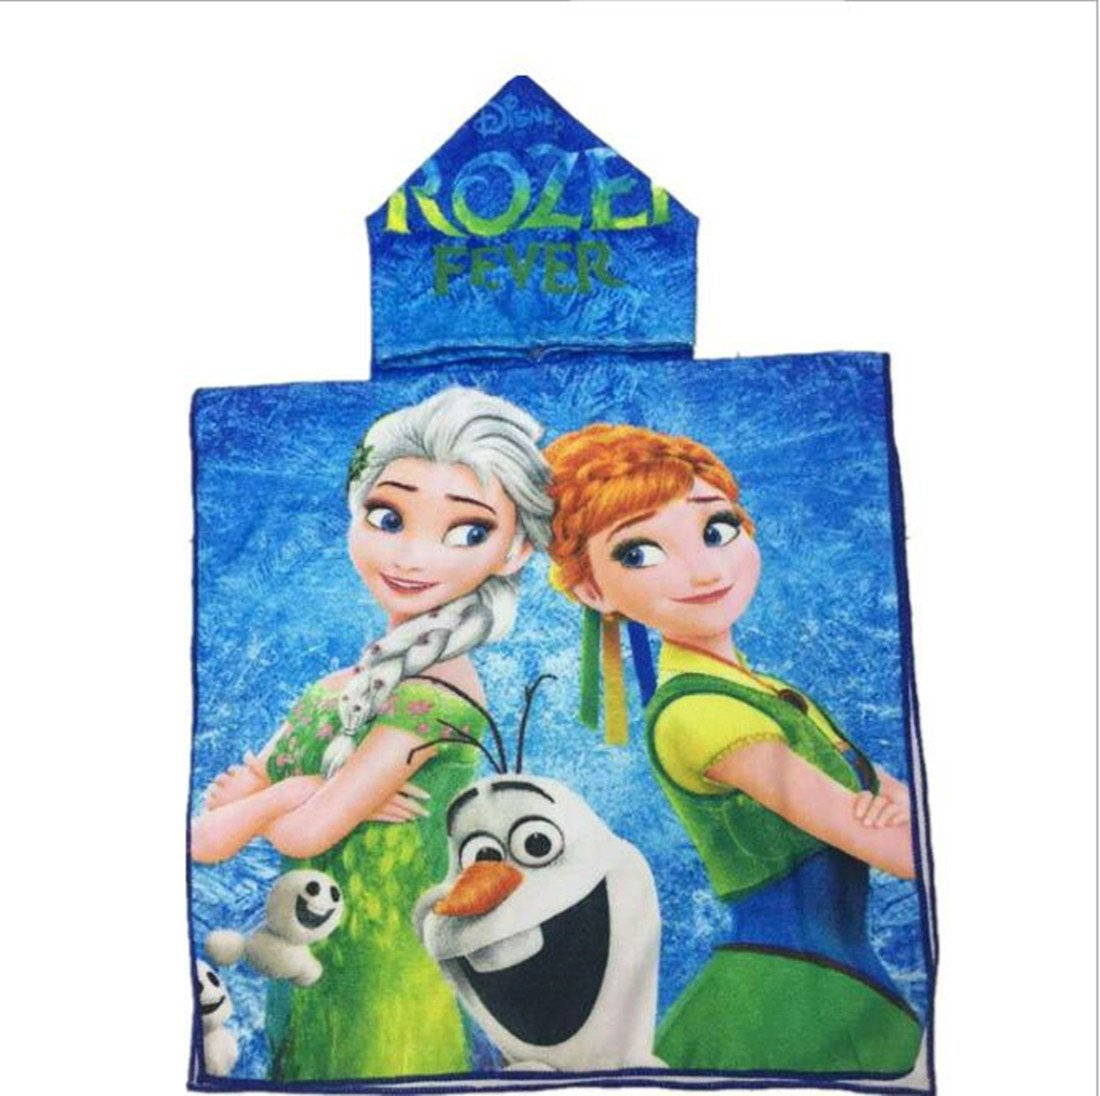 SWEETXIN Infant Kids Animal Design Hooded Bath/Beach Poncho Towel (Frozen)